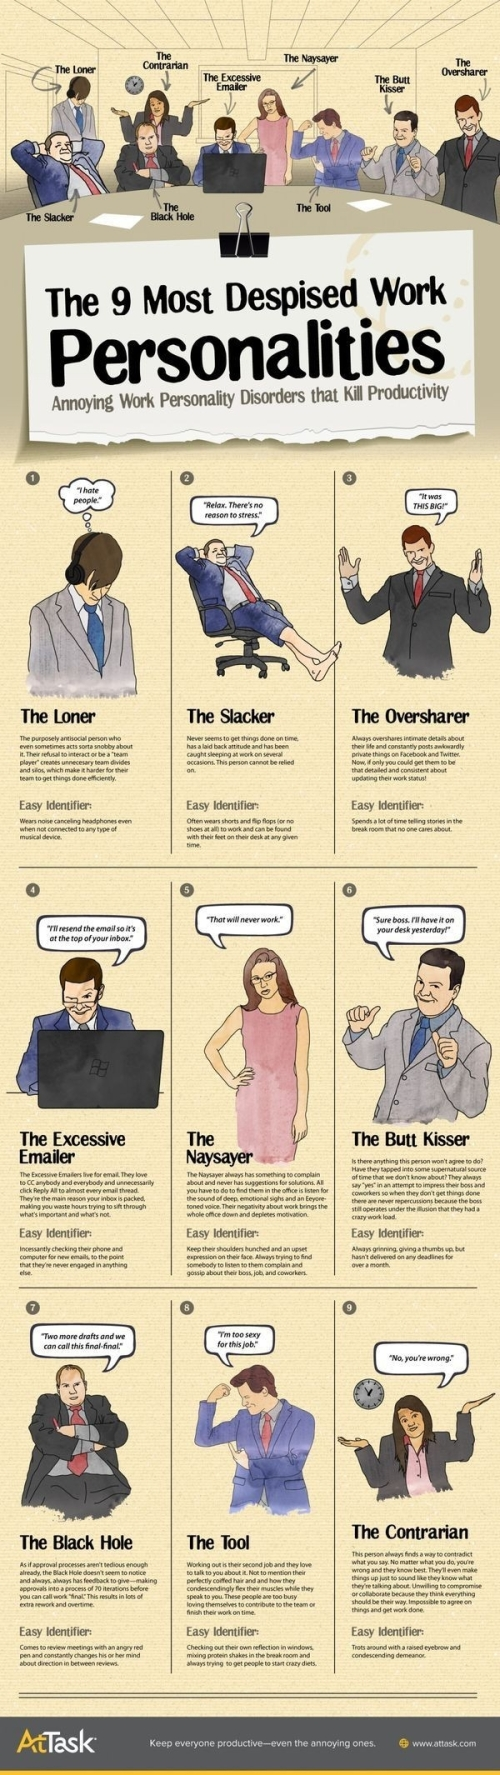 Nine most despised work personalities